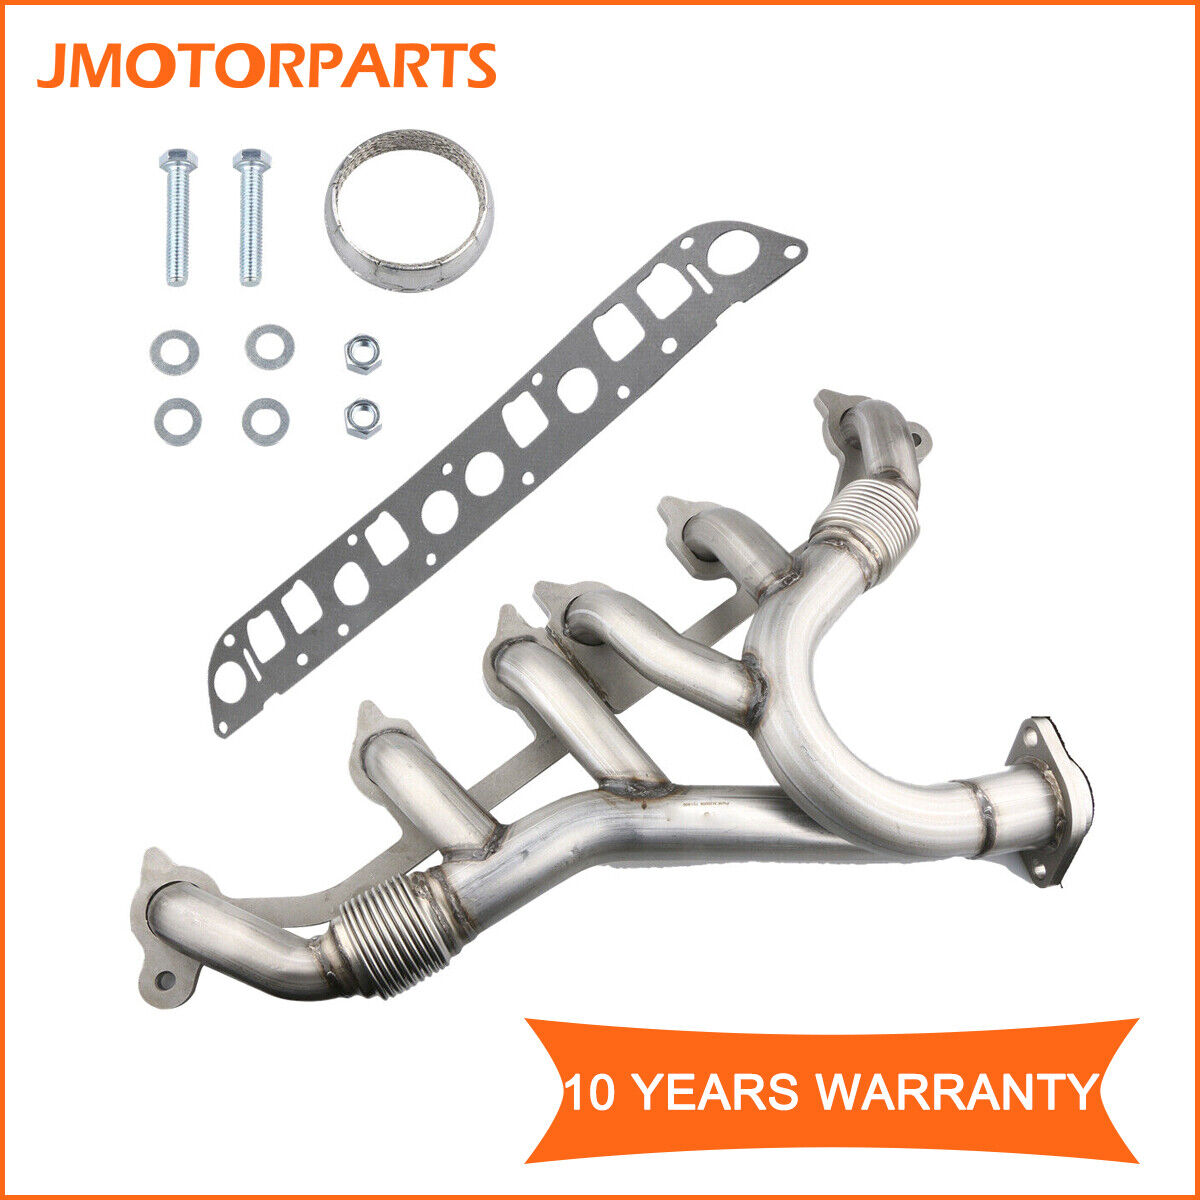 Exhaust Manifold+ Gasket Fits Jeep Wrangler Grand Cherokee 4.0L Stainless Steel